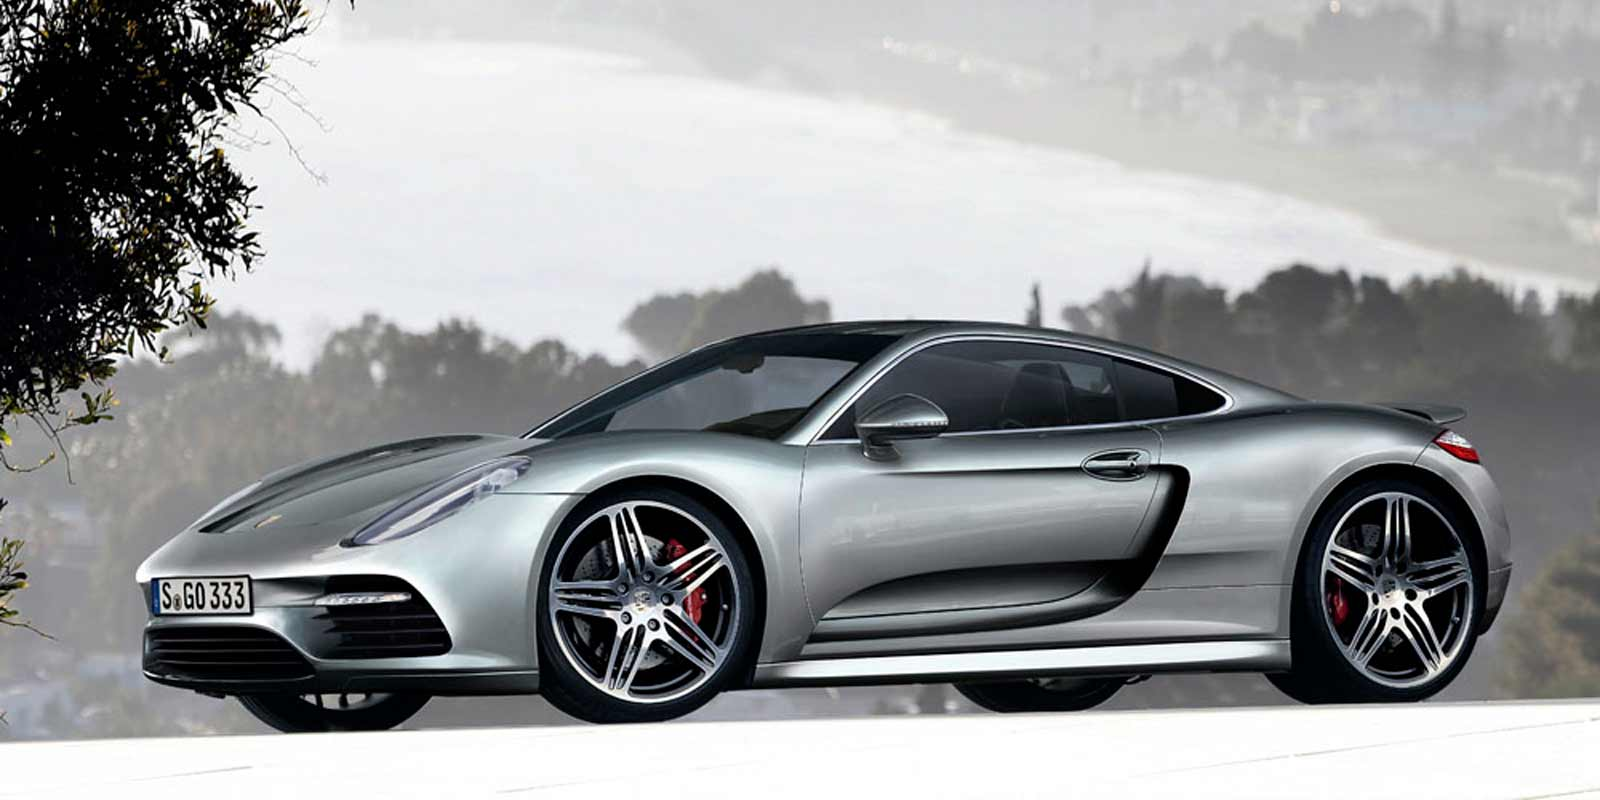 New Supercar From Porsche Carsaddiction Com